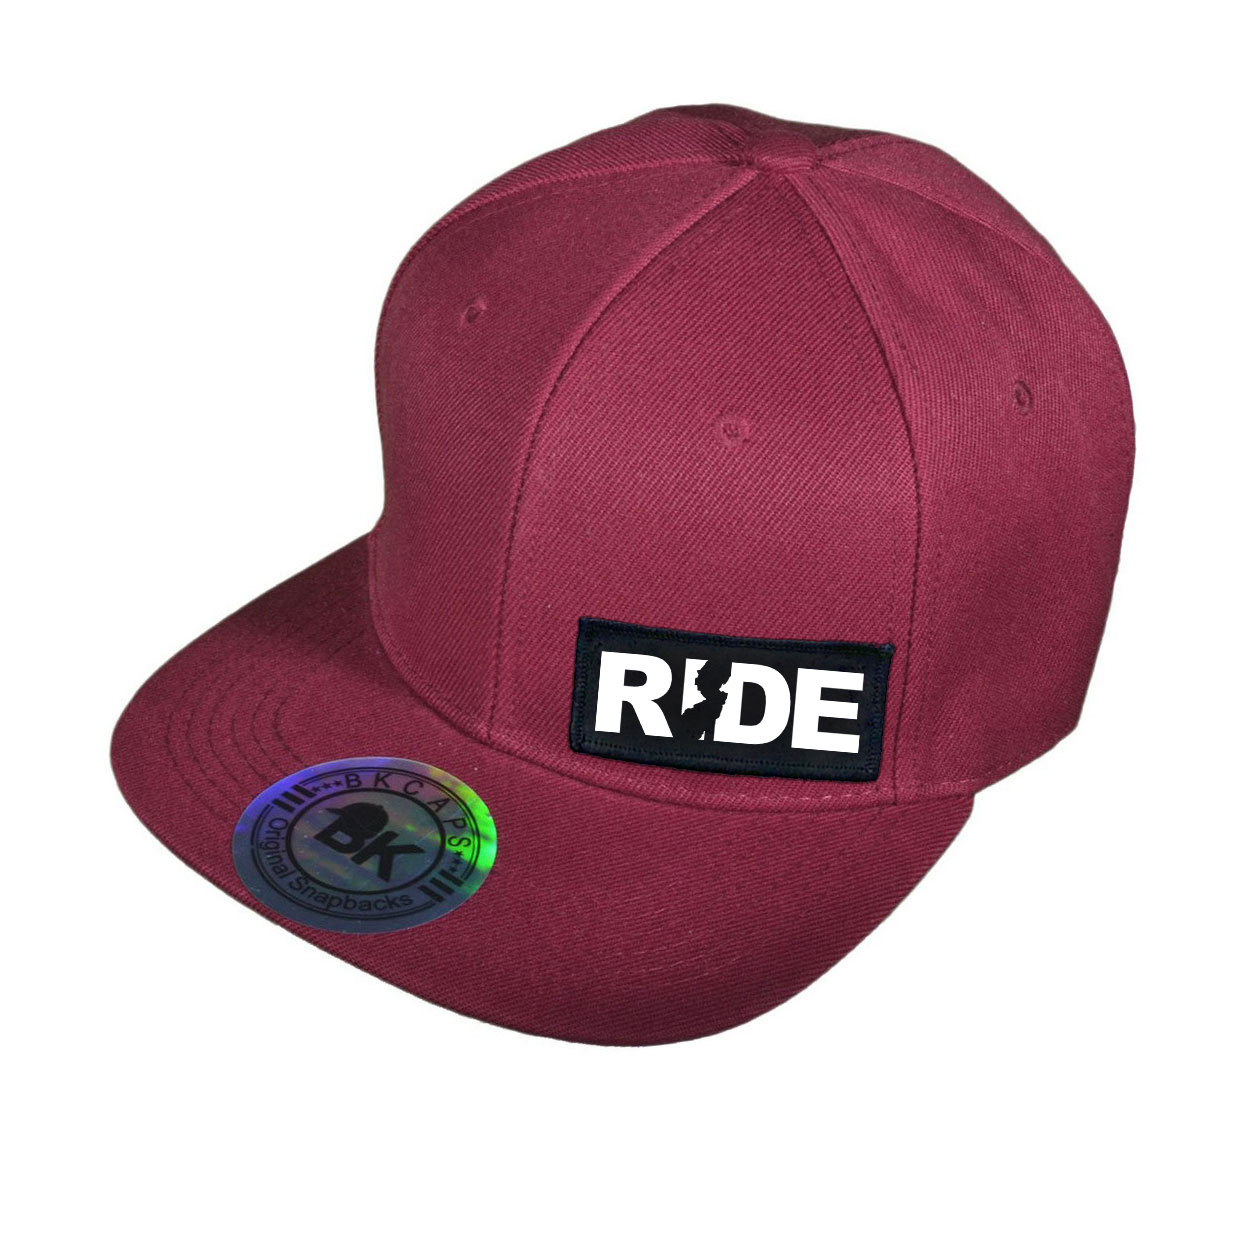 Ride New Jersey Night Out Woven Patch Snapback Flat Brim Hat Burgundy (White Logo)